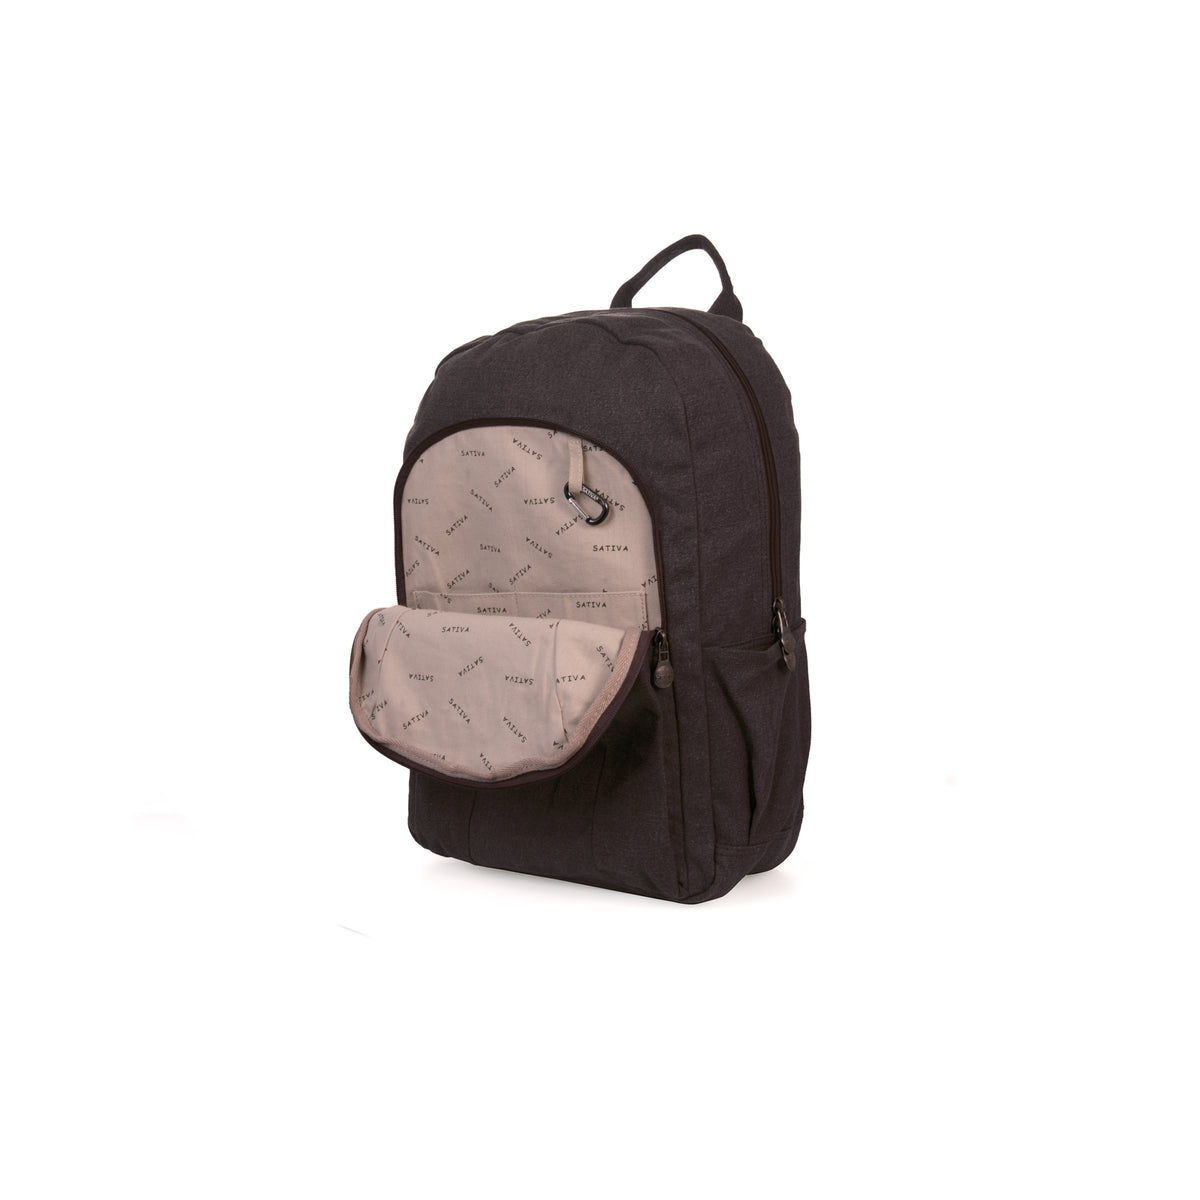 Laptop Backpack - Hemp & Organic Cotton Backpack